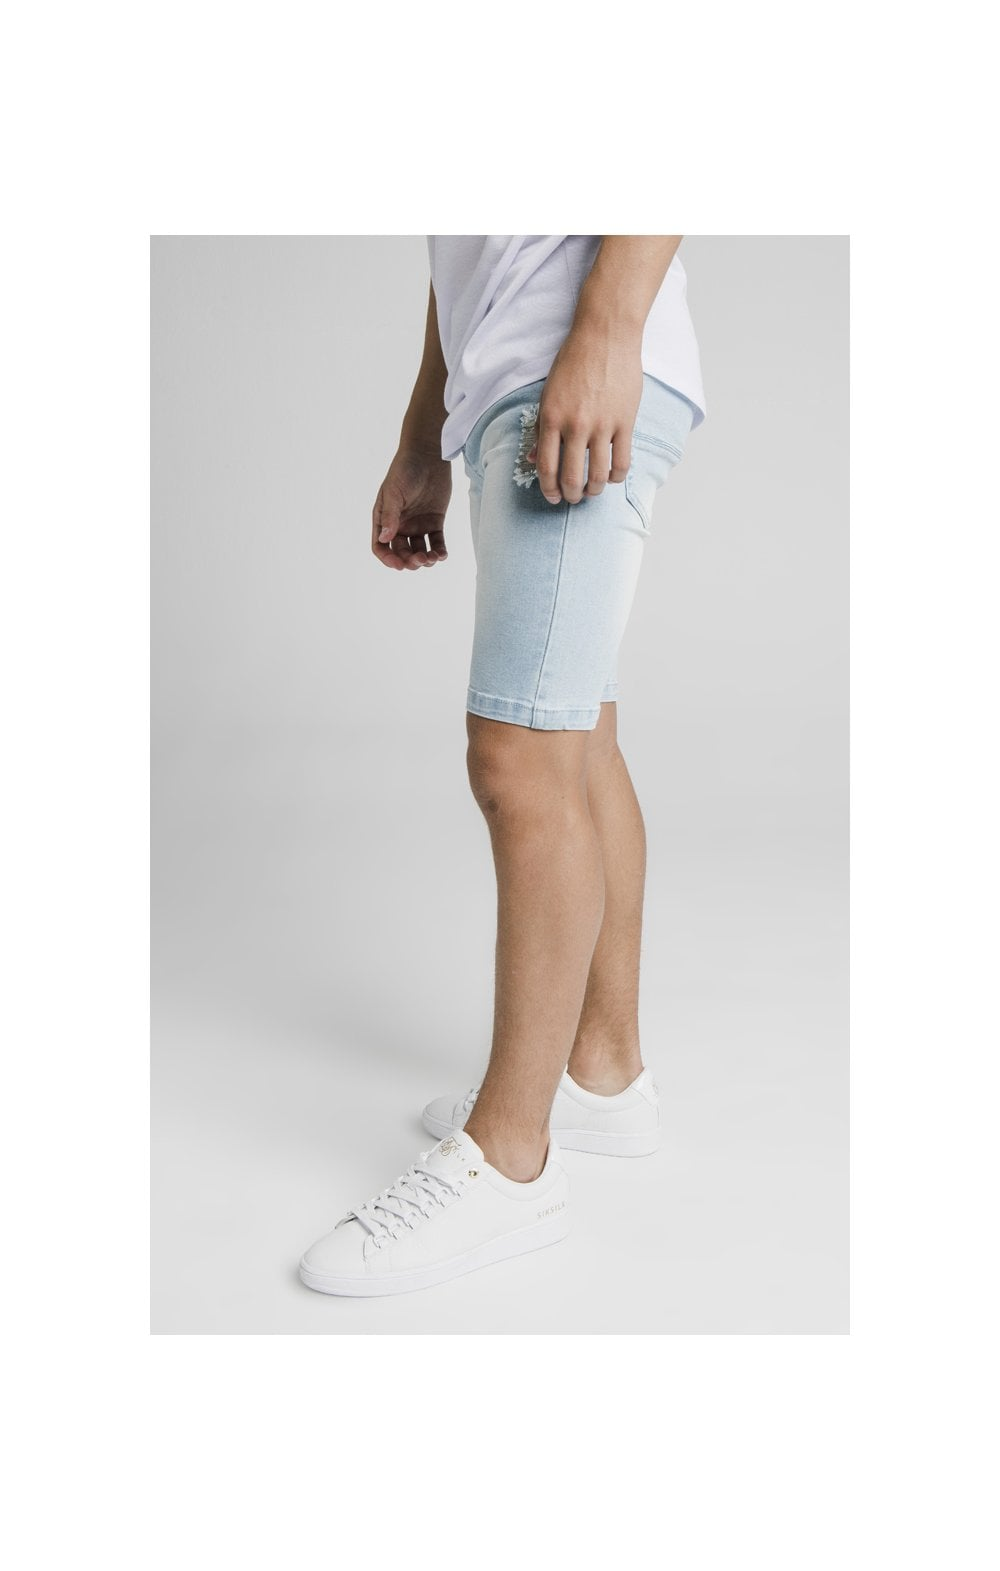 Illusive London Distressed Denim Shorts - Light Blue (3)